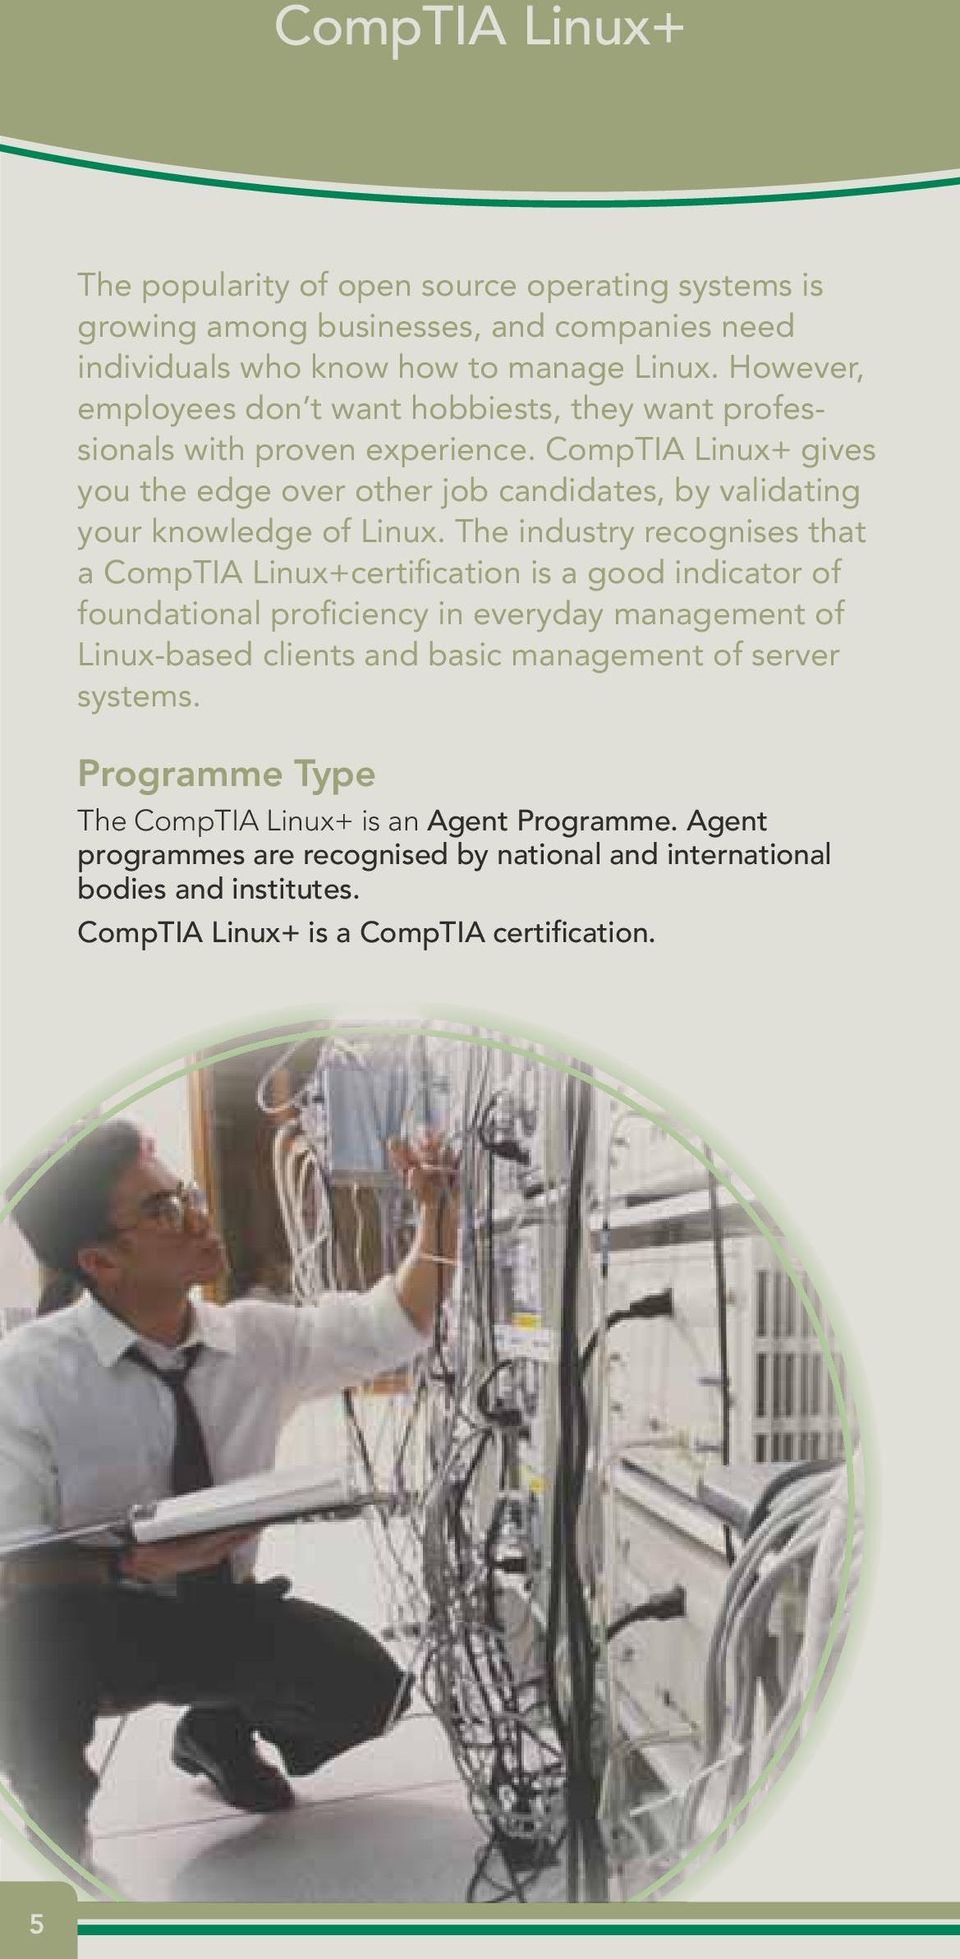 CompTIA Linux+ gives you the edge over other job candidates, by validating your knowledge of Linux.